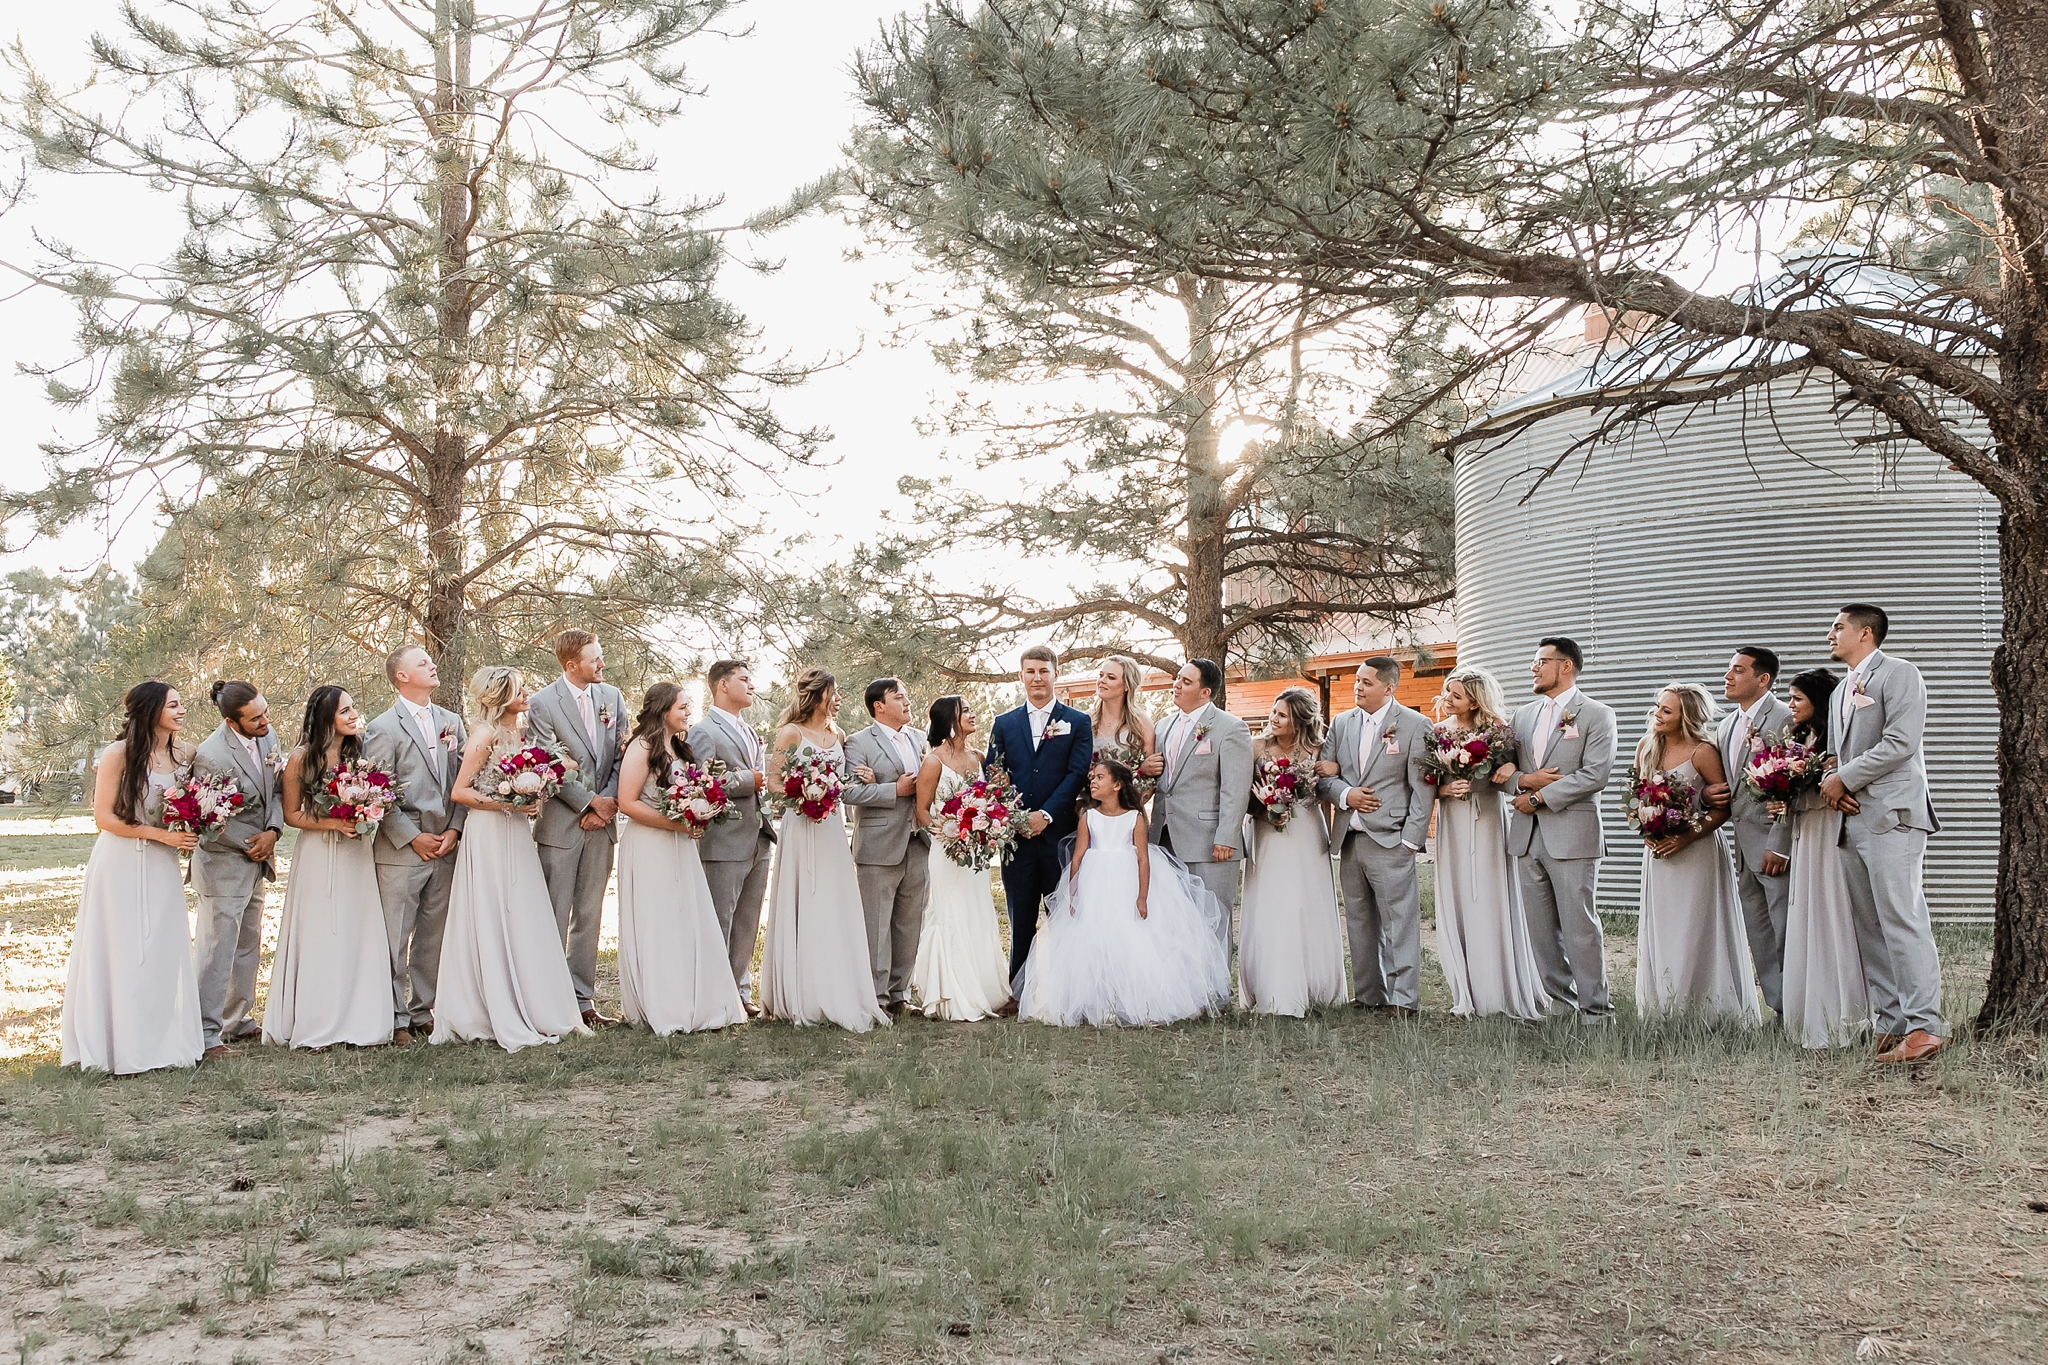 Alicia+lucia+photography+-+albuquerque+wedding+photographer+-+santa+fe+wedding+photography+-+new+mexico+wedding+photographer+-+new+mexico+wedding+-+new+mexico+wedding+-+barn+wedding+-+enchanted+vine+barn+wedding+-+ruidoso+wedding_0119.jpg